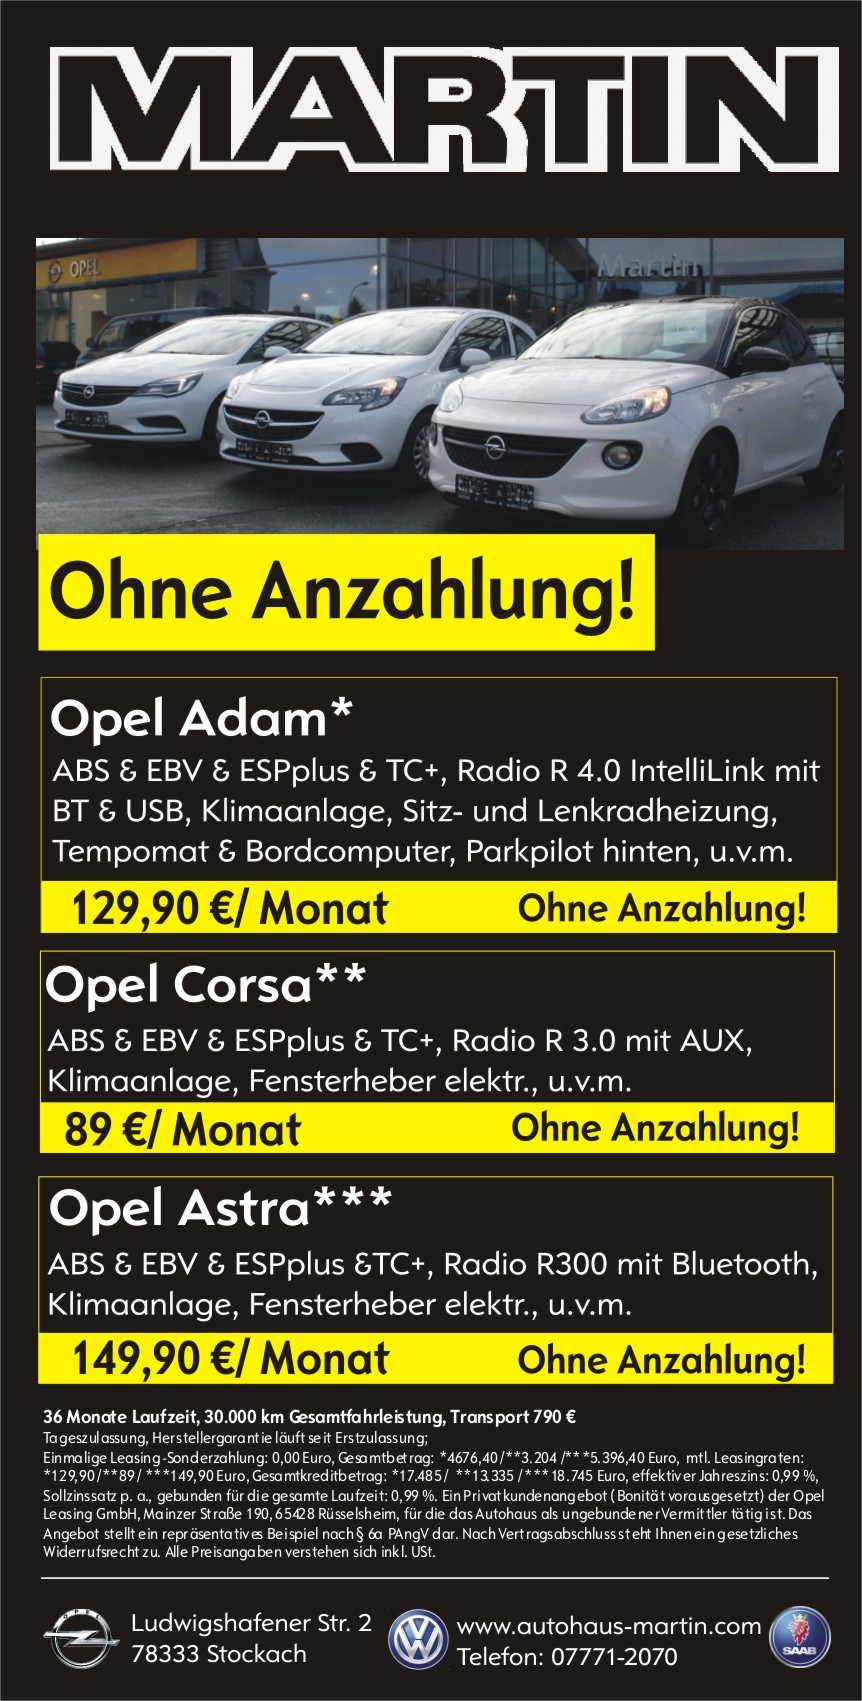 Leasing ohne Anzahlung